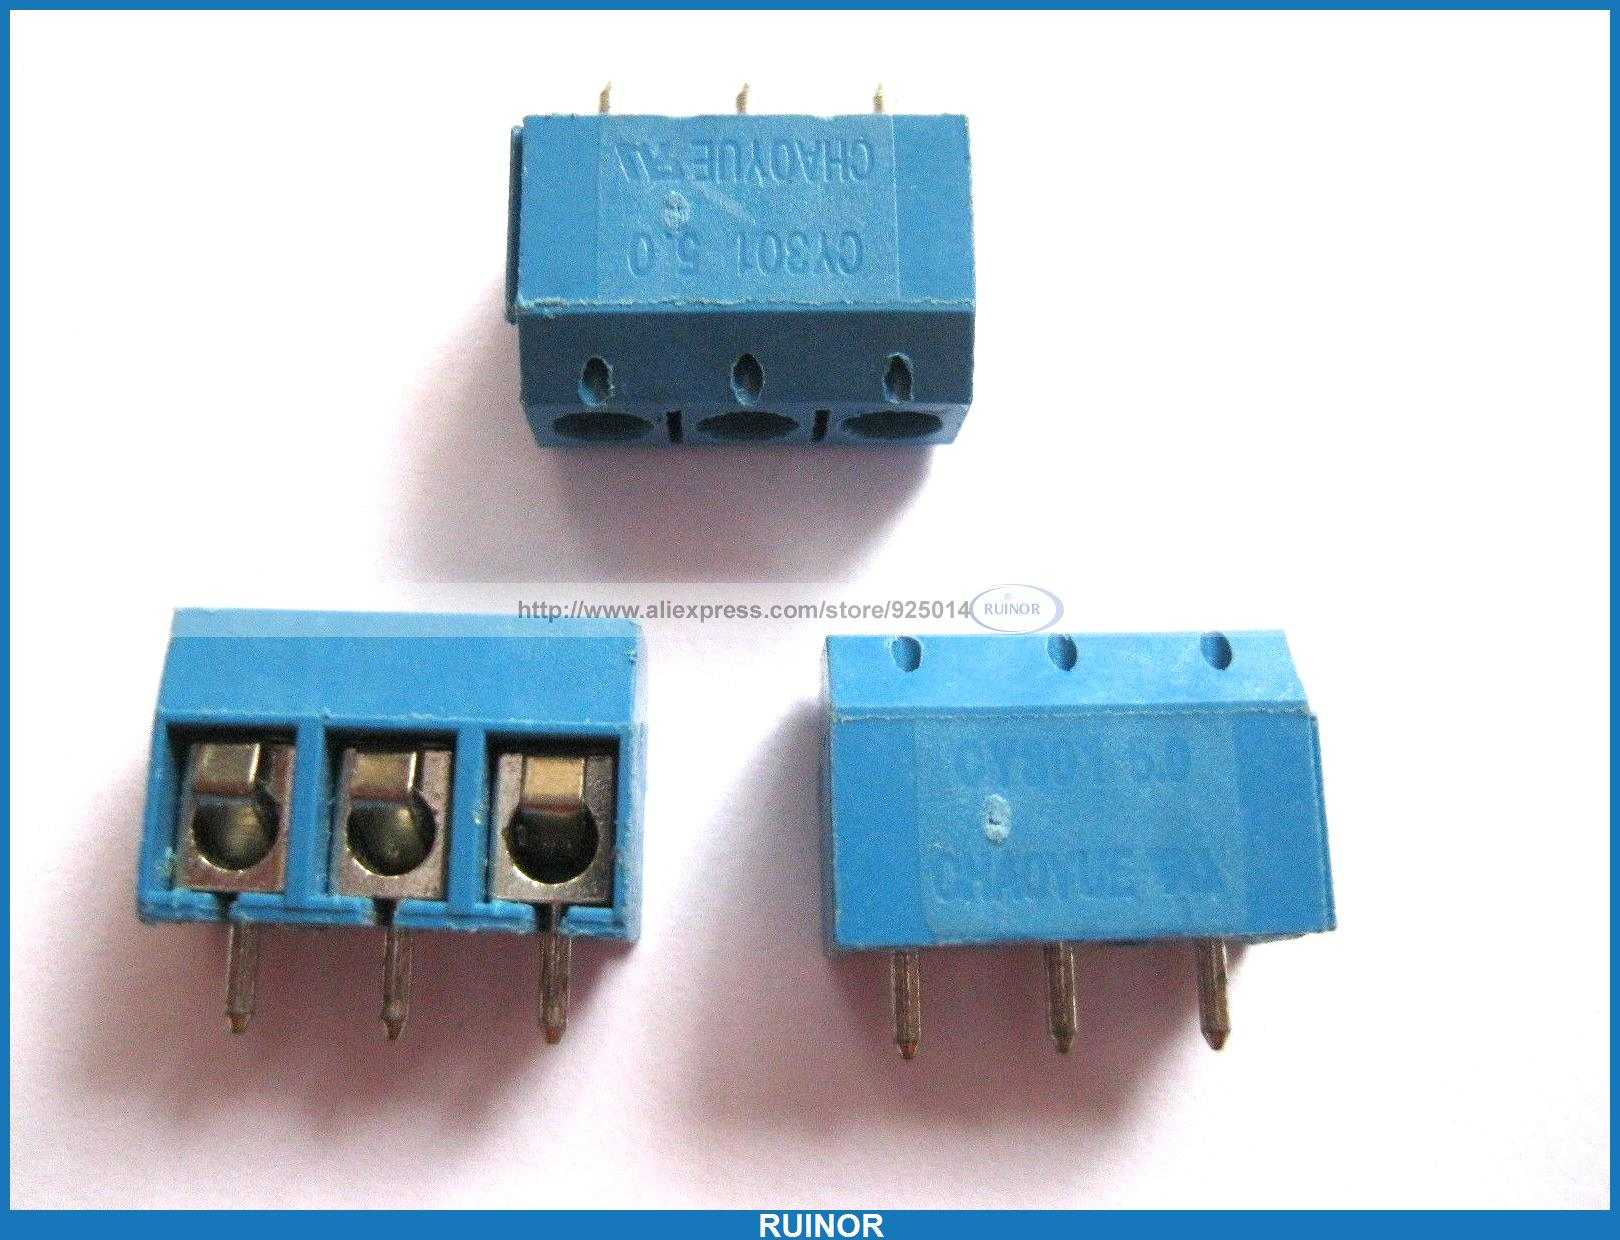 100 Pcs Blue 3 Pin Pitch 5 0mm Screw Terminal Block Connector CY301 5 pcs 400v 20a 7 position screw barrier terminal block bar connector replacement